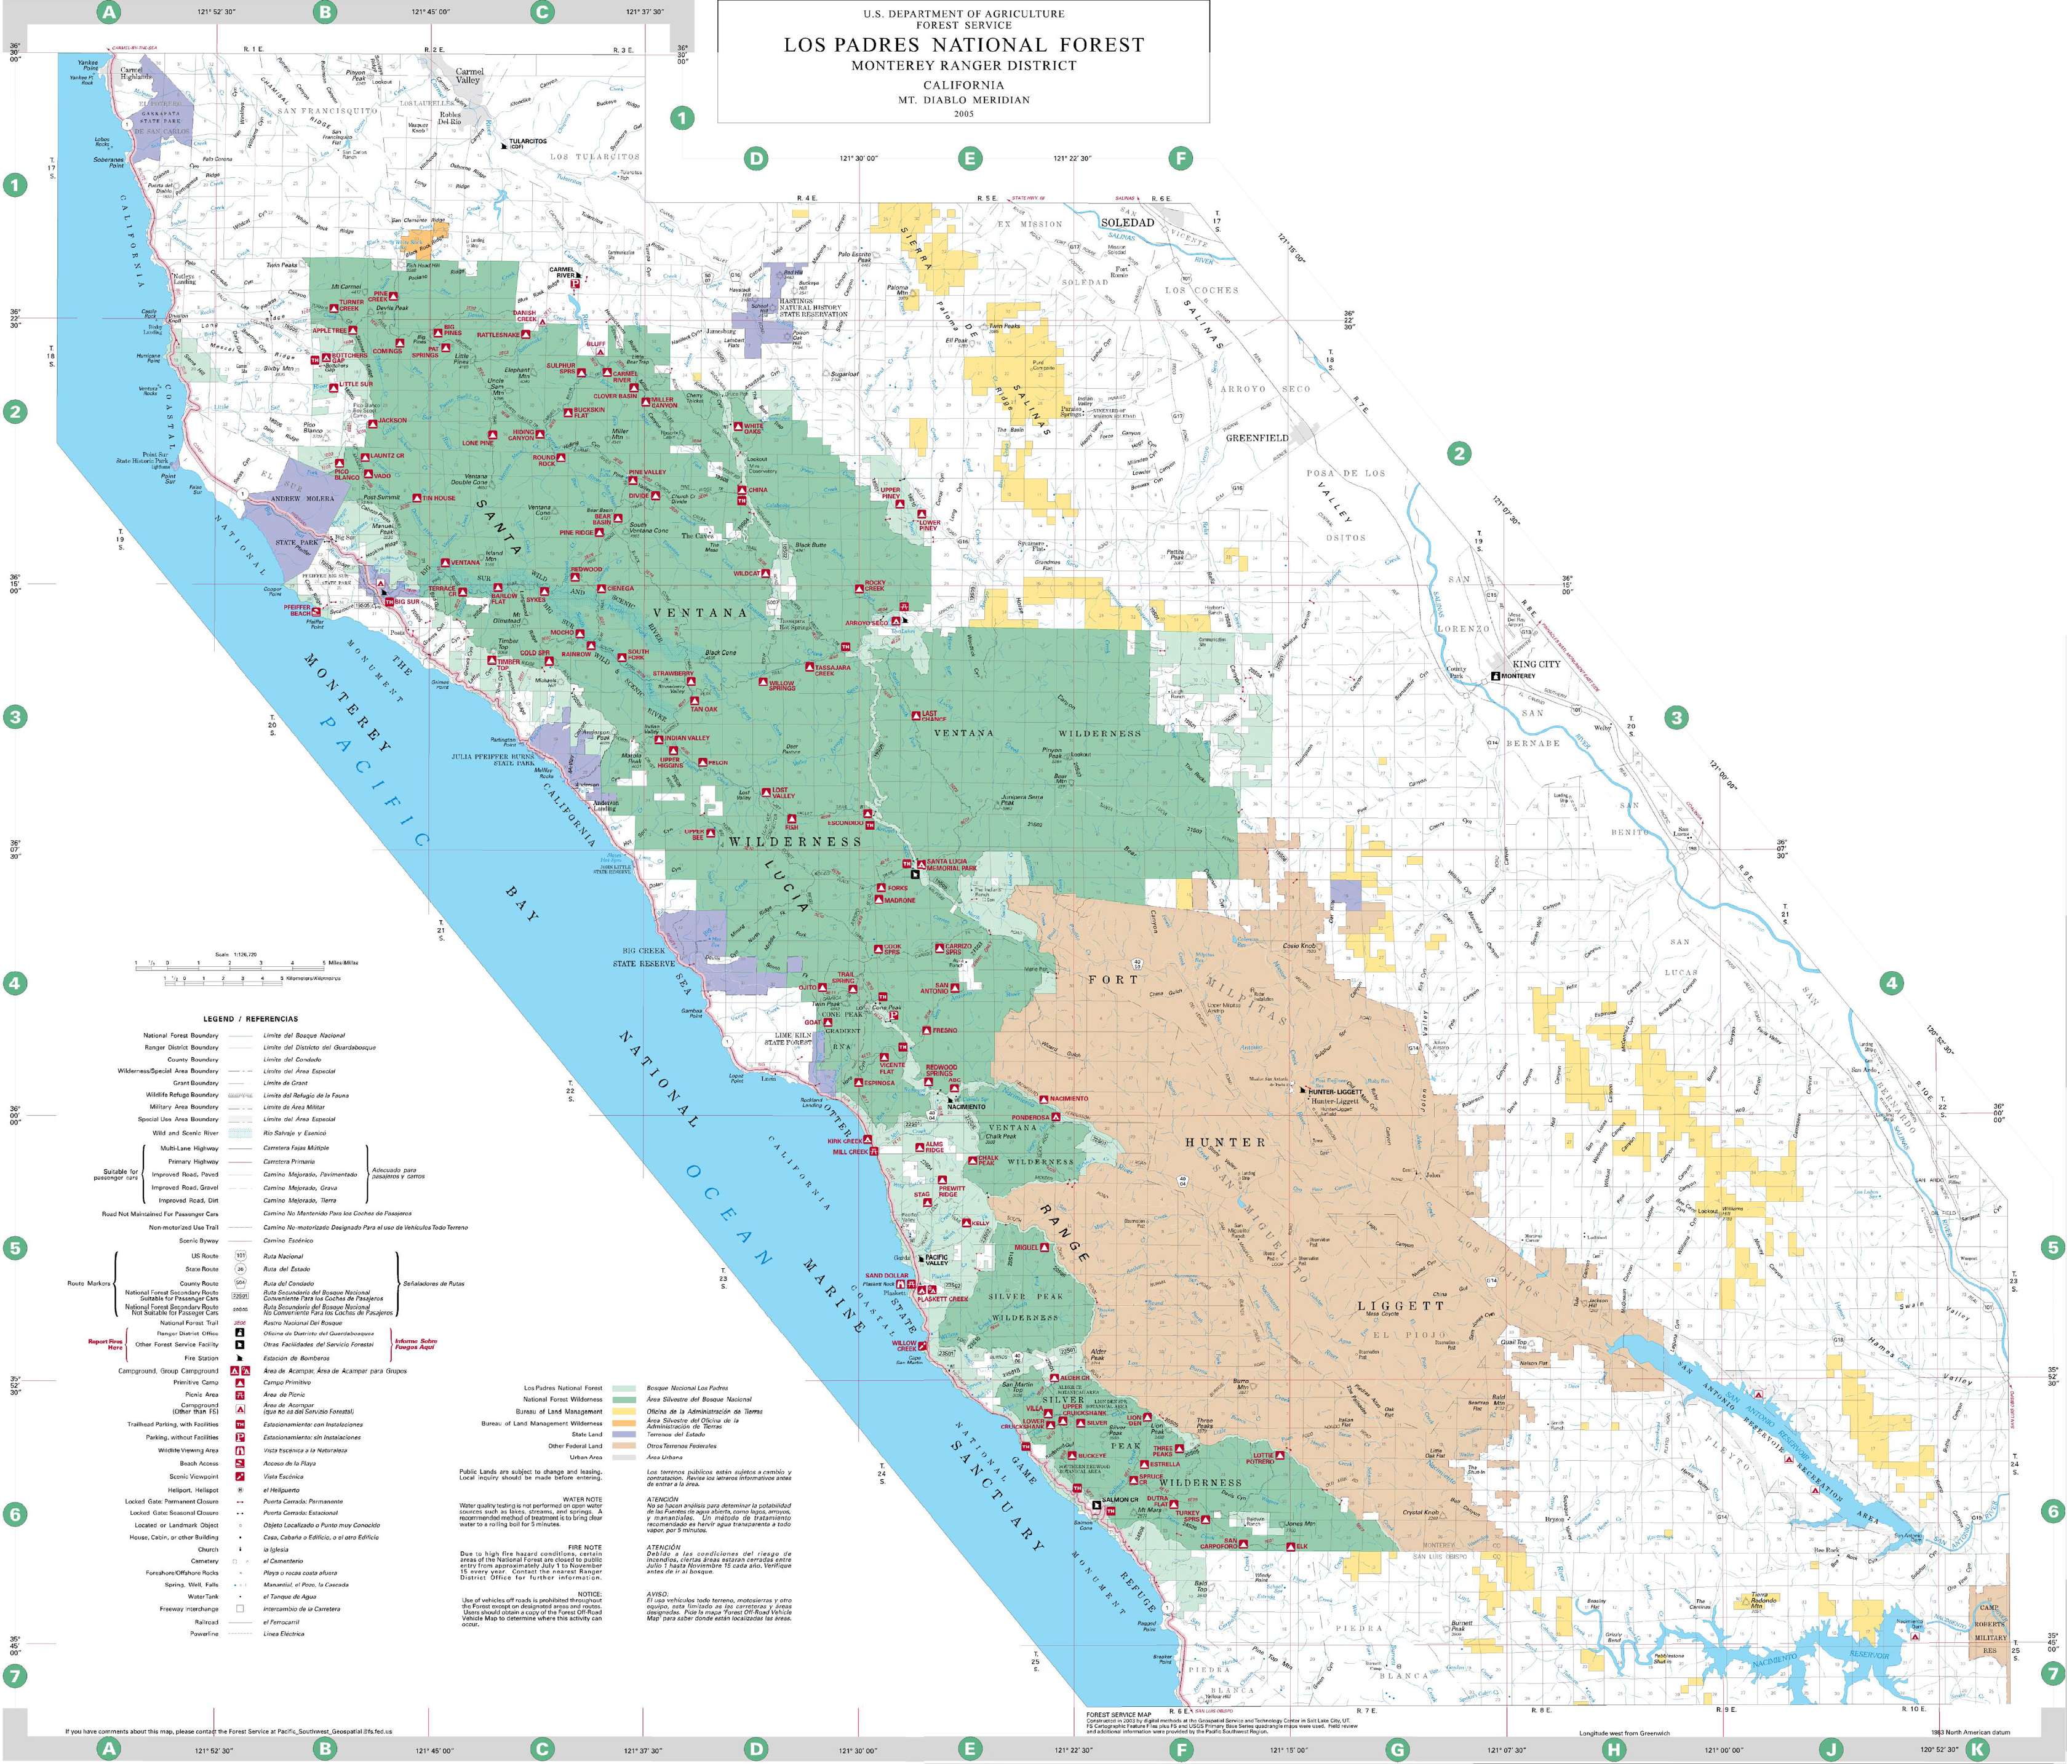 stanislaus river map with National Forests Of California on State Level also County precipMaps further CSU Fresno Map additionally California Towns also Bear River  Feather River.